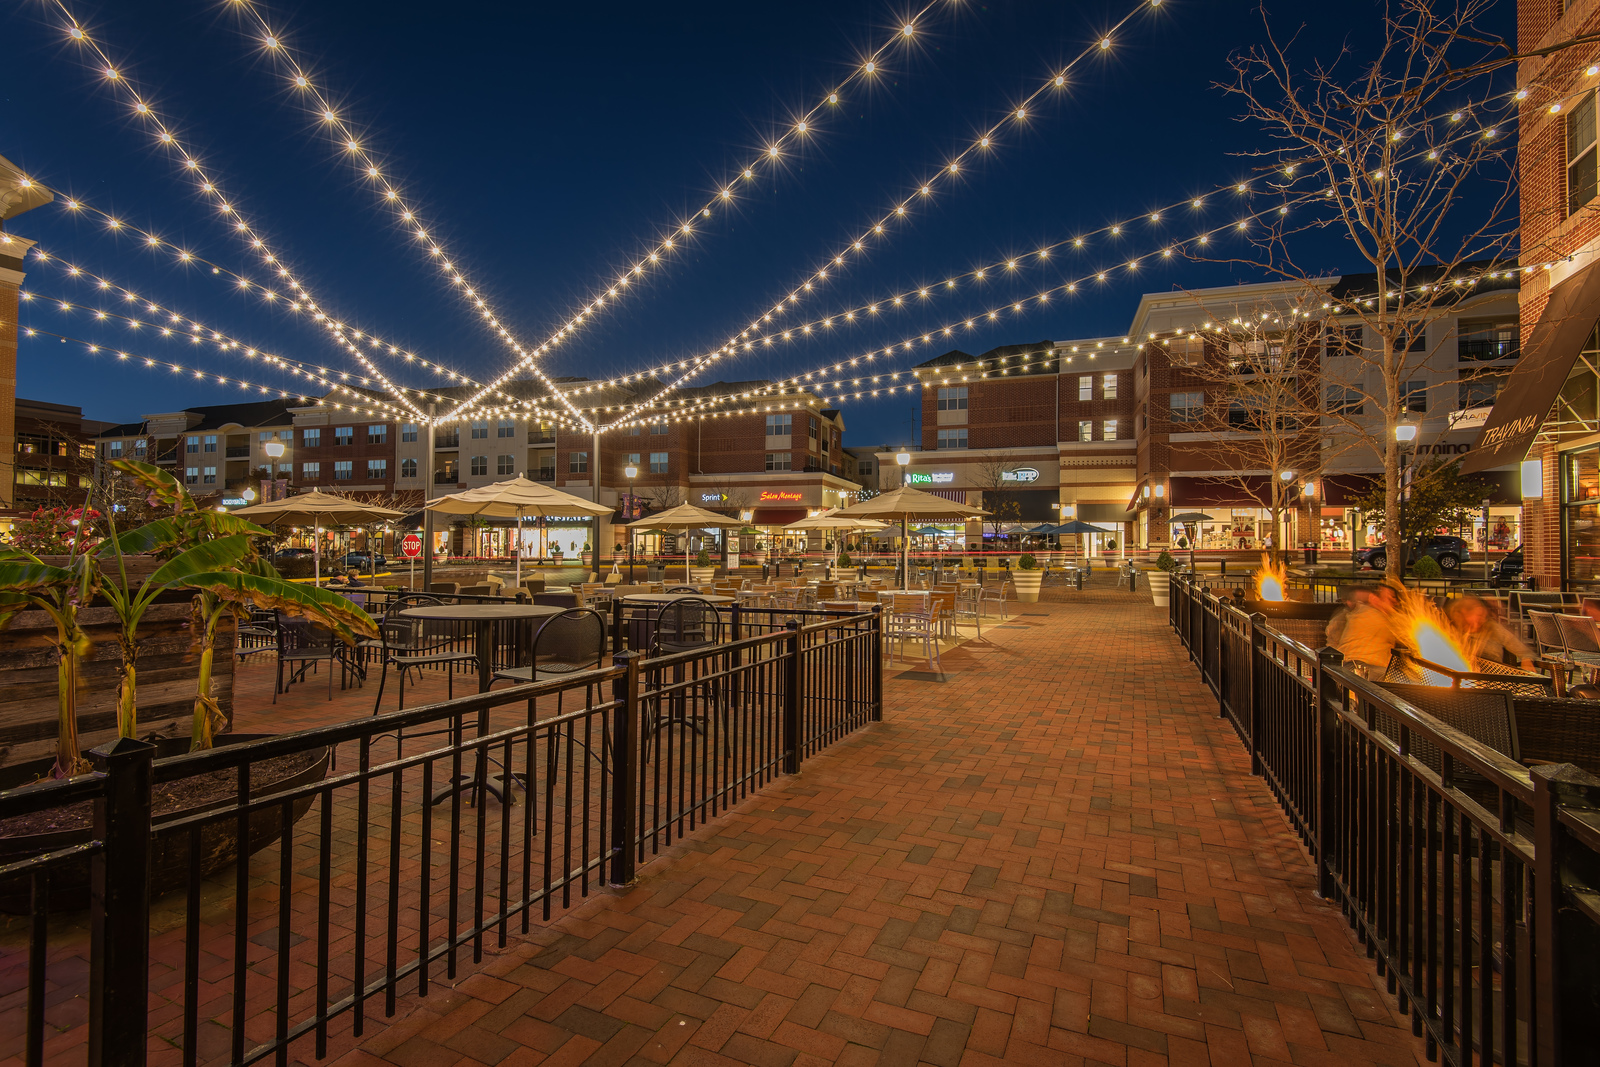 Edison lights hang above the brick-paved sidewalks at Village Walk, where every detail has been considered.